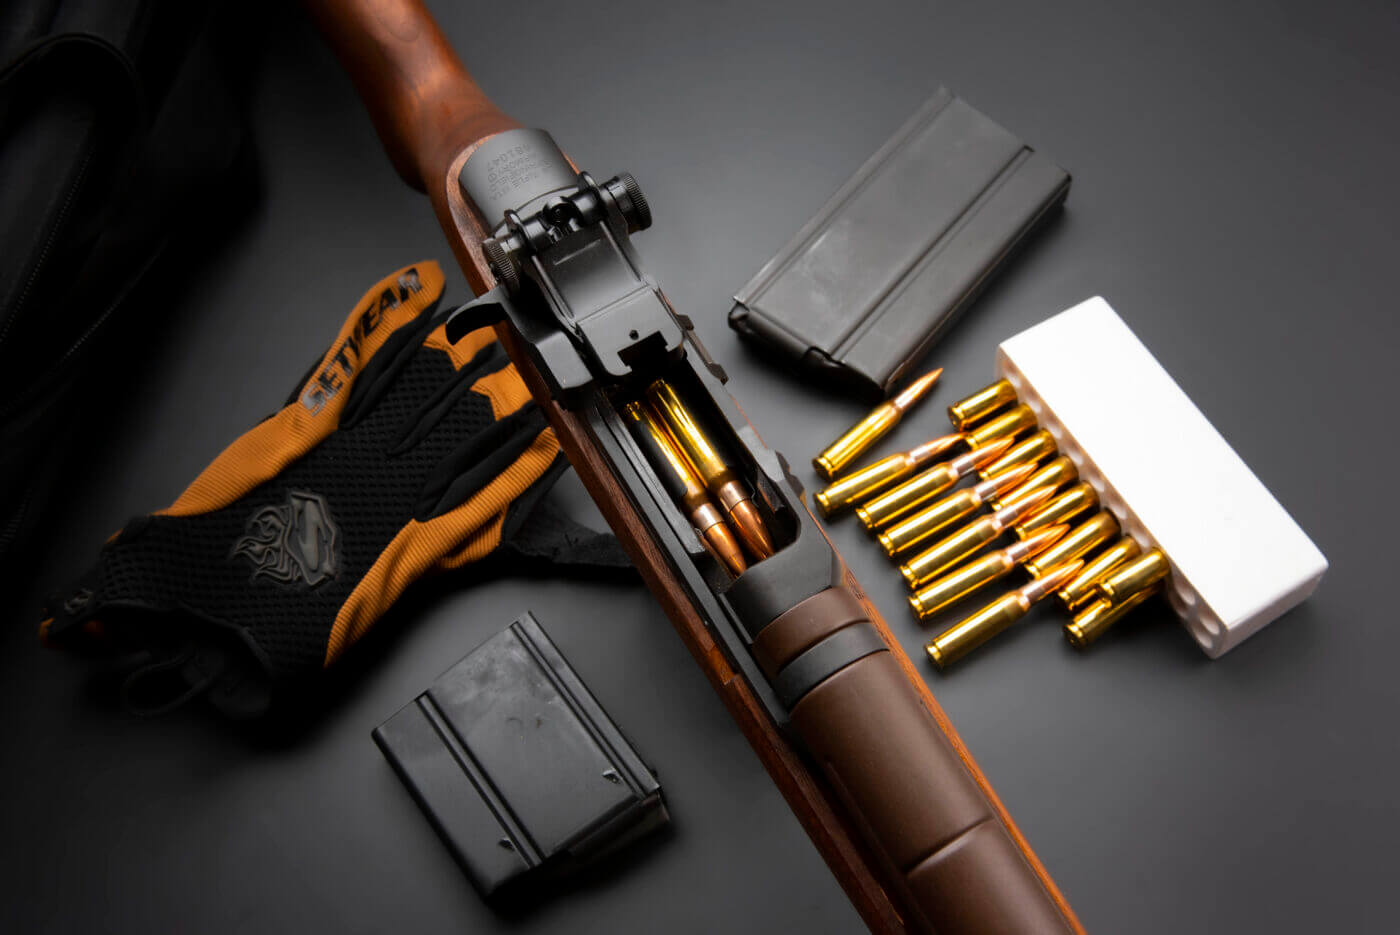 Springfield Armory M1A rifle with ammo